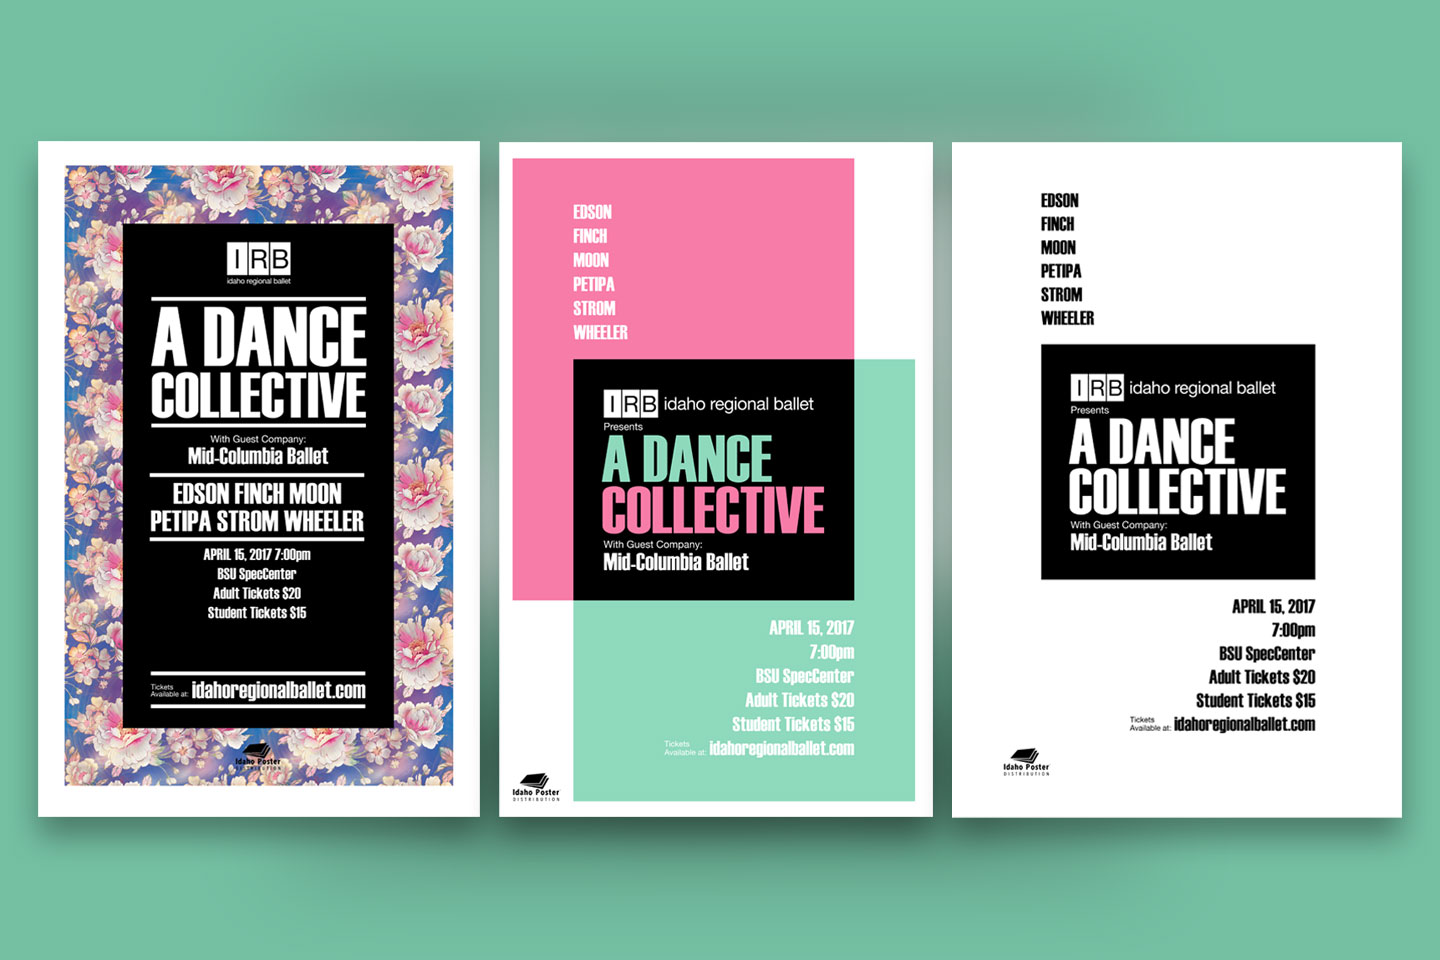 Poster design concepts for Idaho Regional Ballet's A Dance Collective event